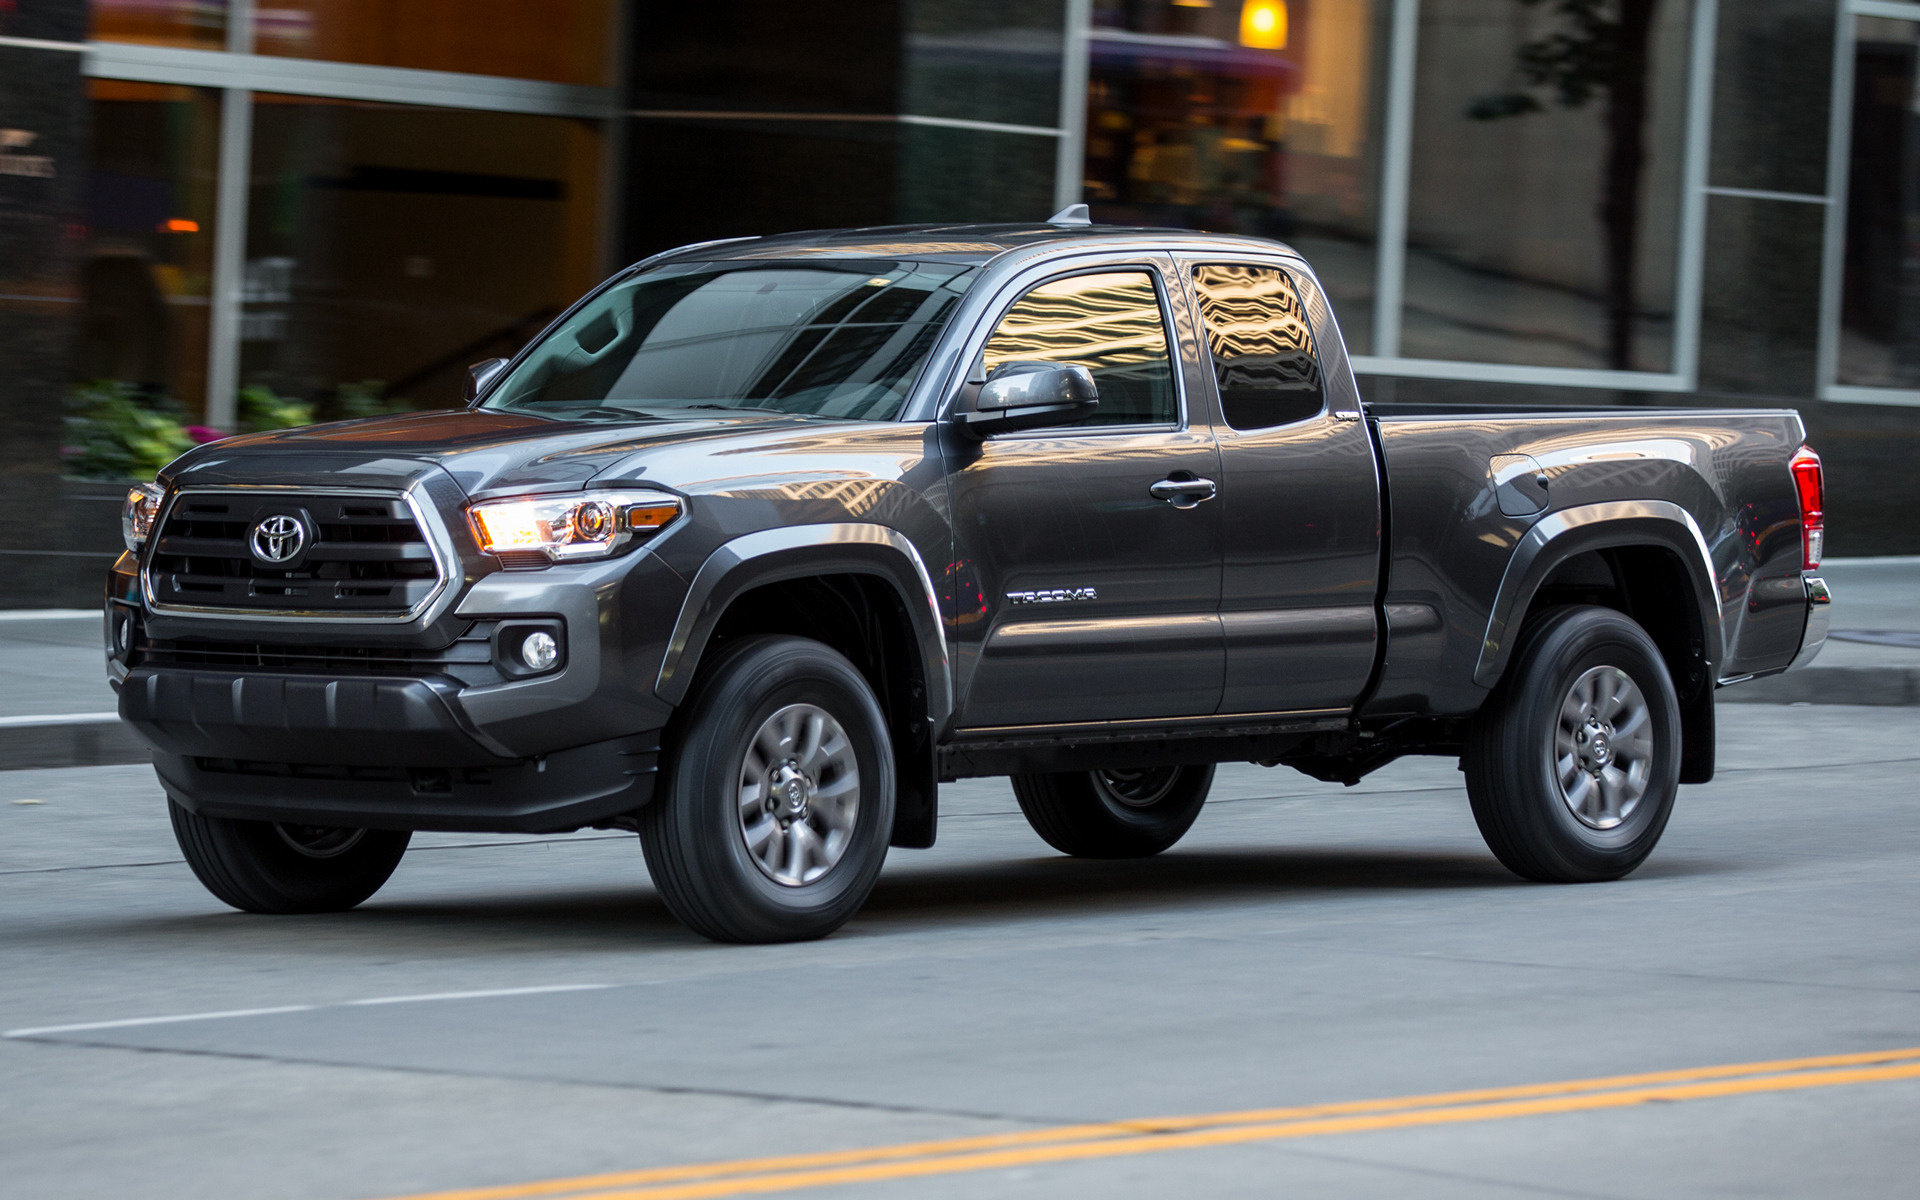 Toyota Tacoma SR5 Access Cab 2016 Wallpapers and HD Images 1920x1200